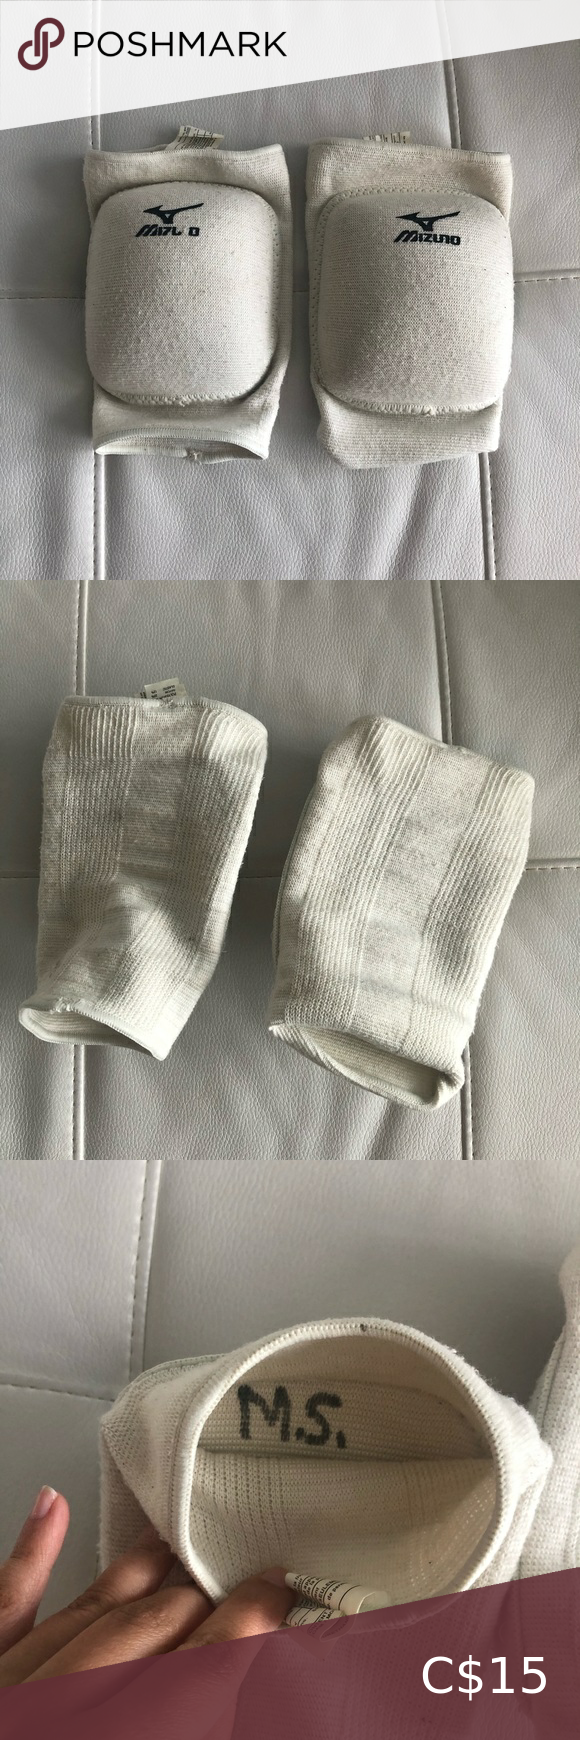 Volleyball Knee Pads Worn Quite A Bit But They Still Work Perfectly Other In 2020 Volleyball Knee Pads Knee Pads Knee